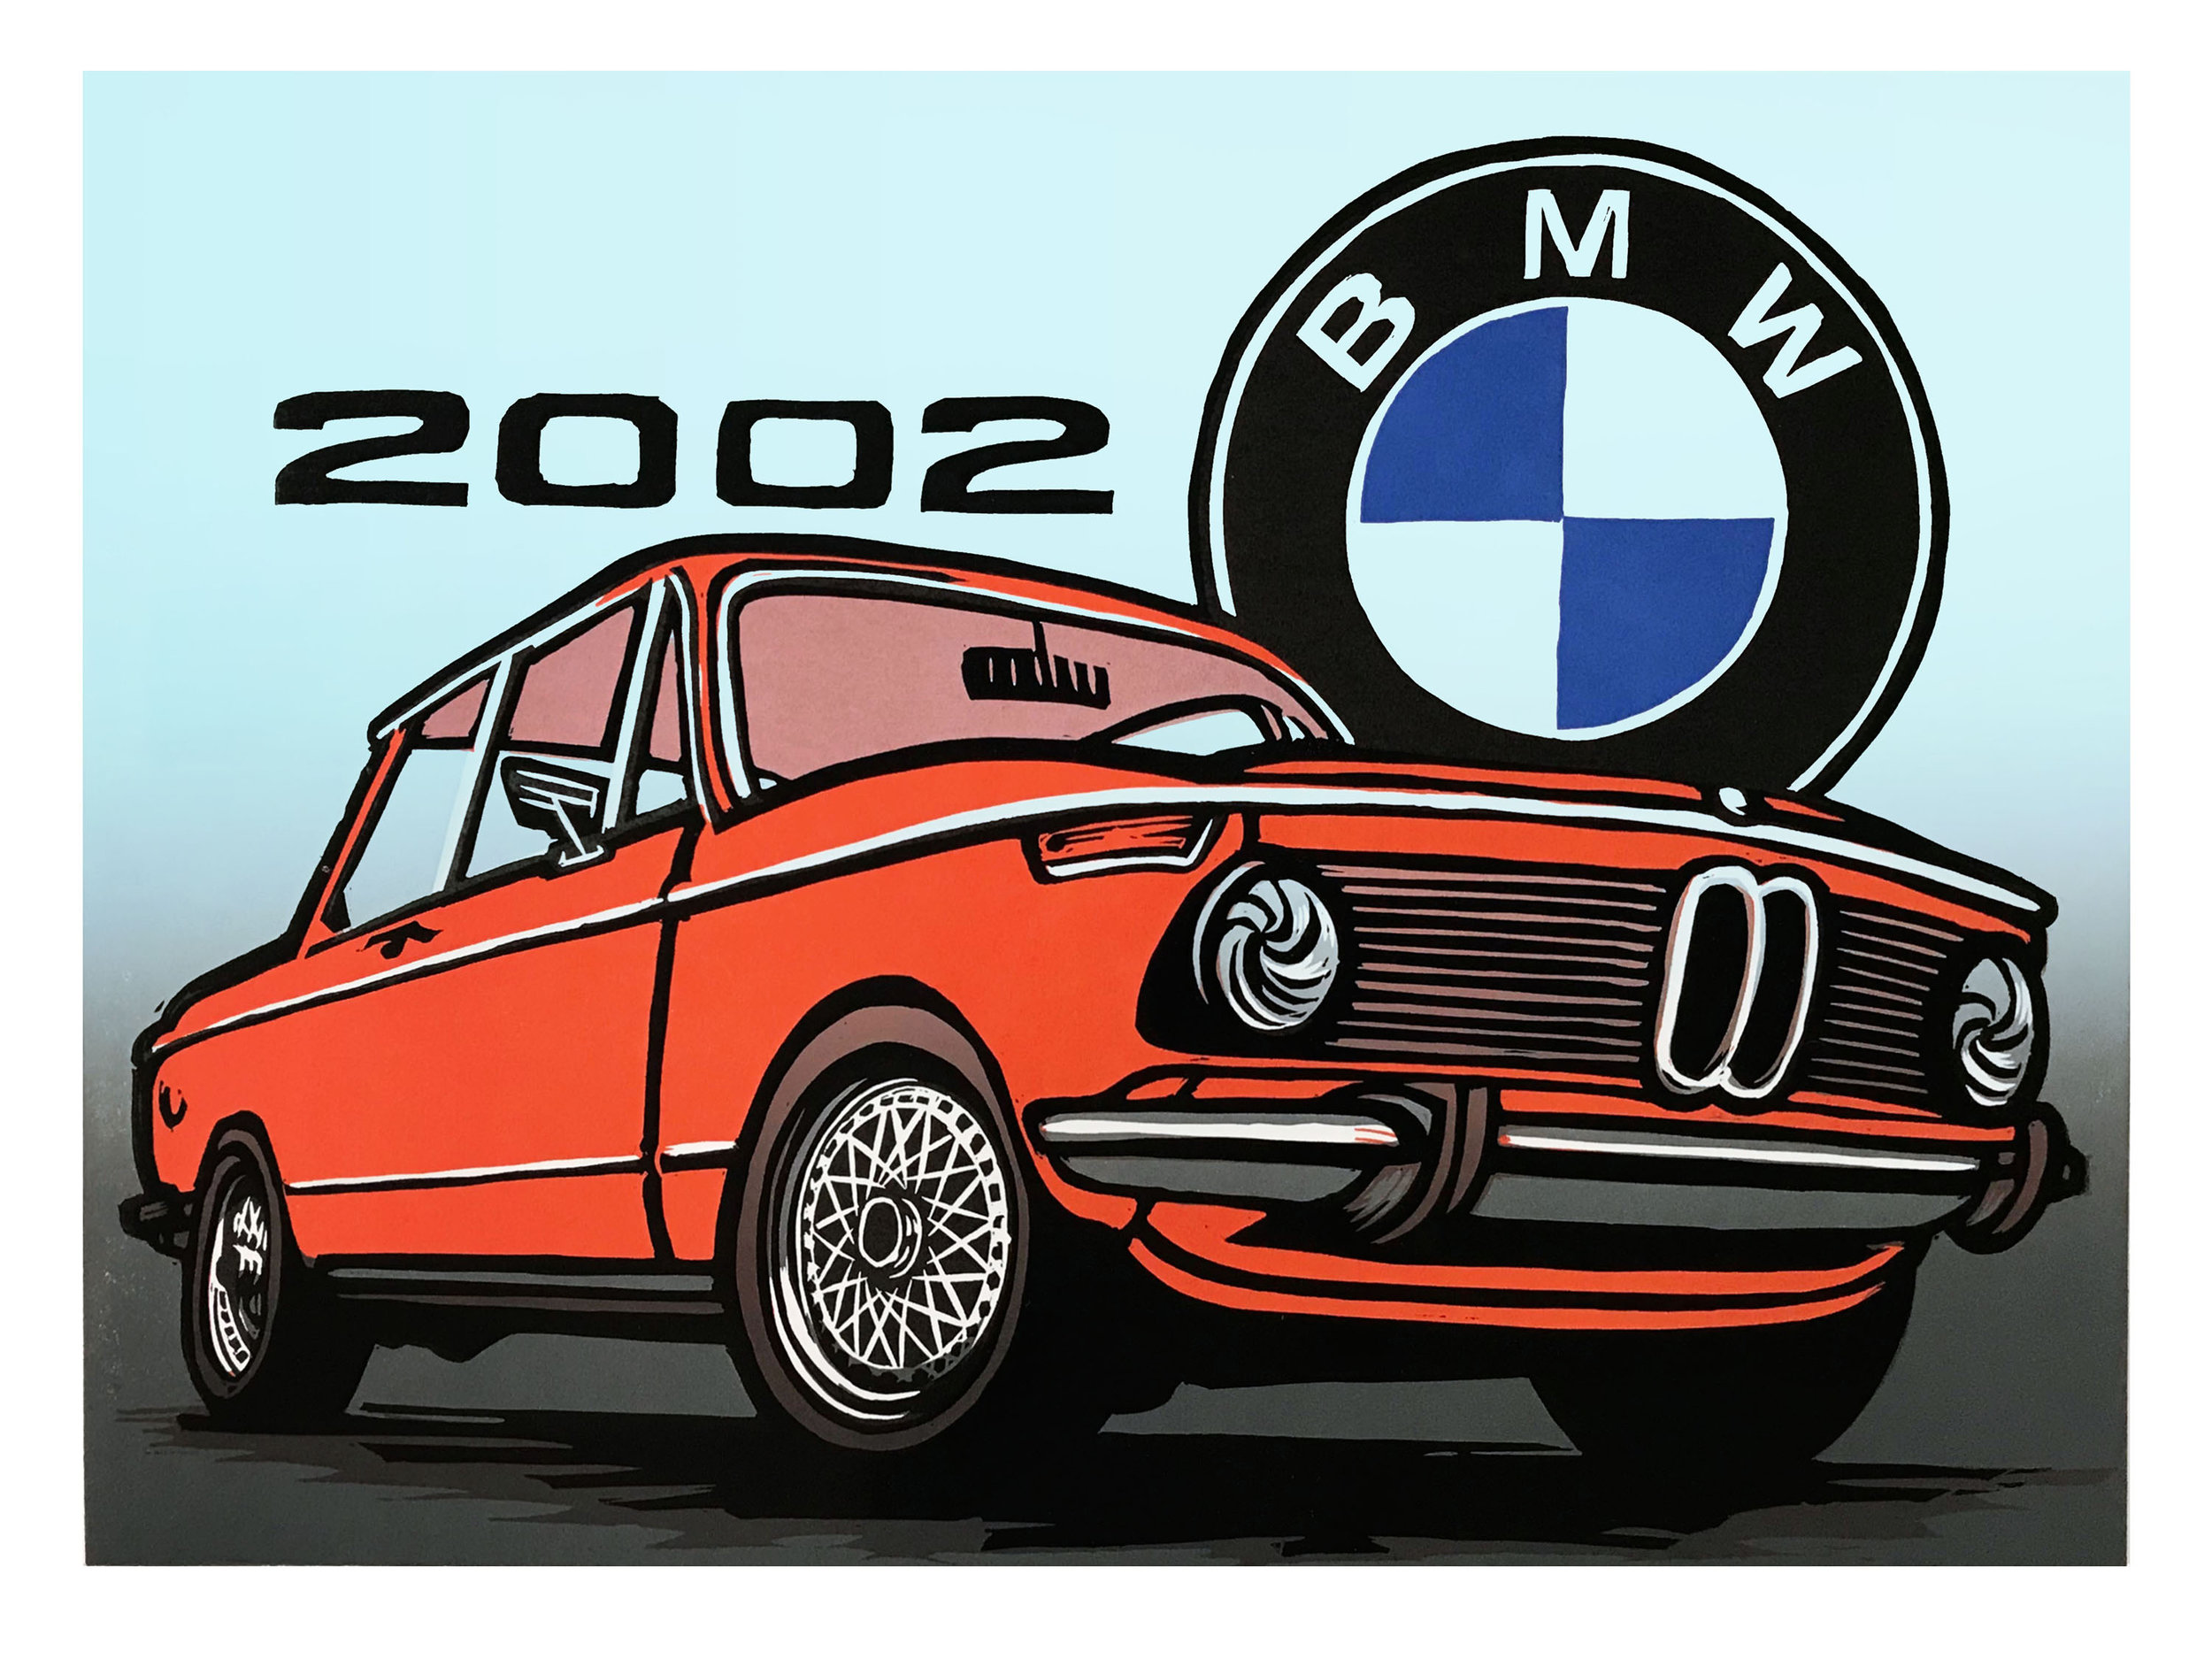 """""""BMW 2002""""   18x24"""" 5 Color Woodcut Print on 135lb Mohawk Paper by Martin Mazorra              Price: $200.00 (unframed) $300.00 (framed)  Edition size: 50"""